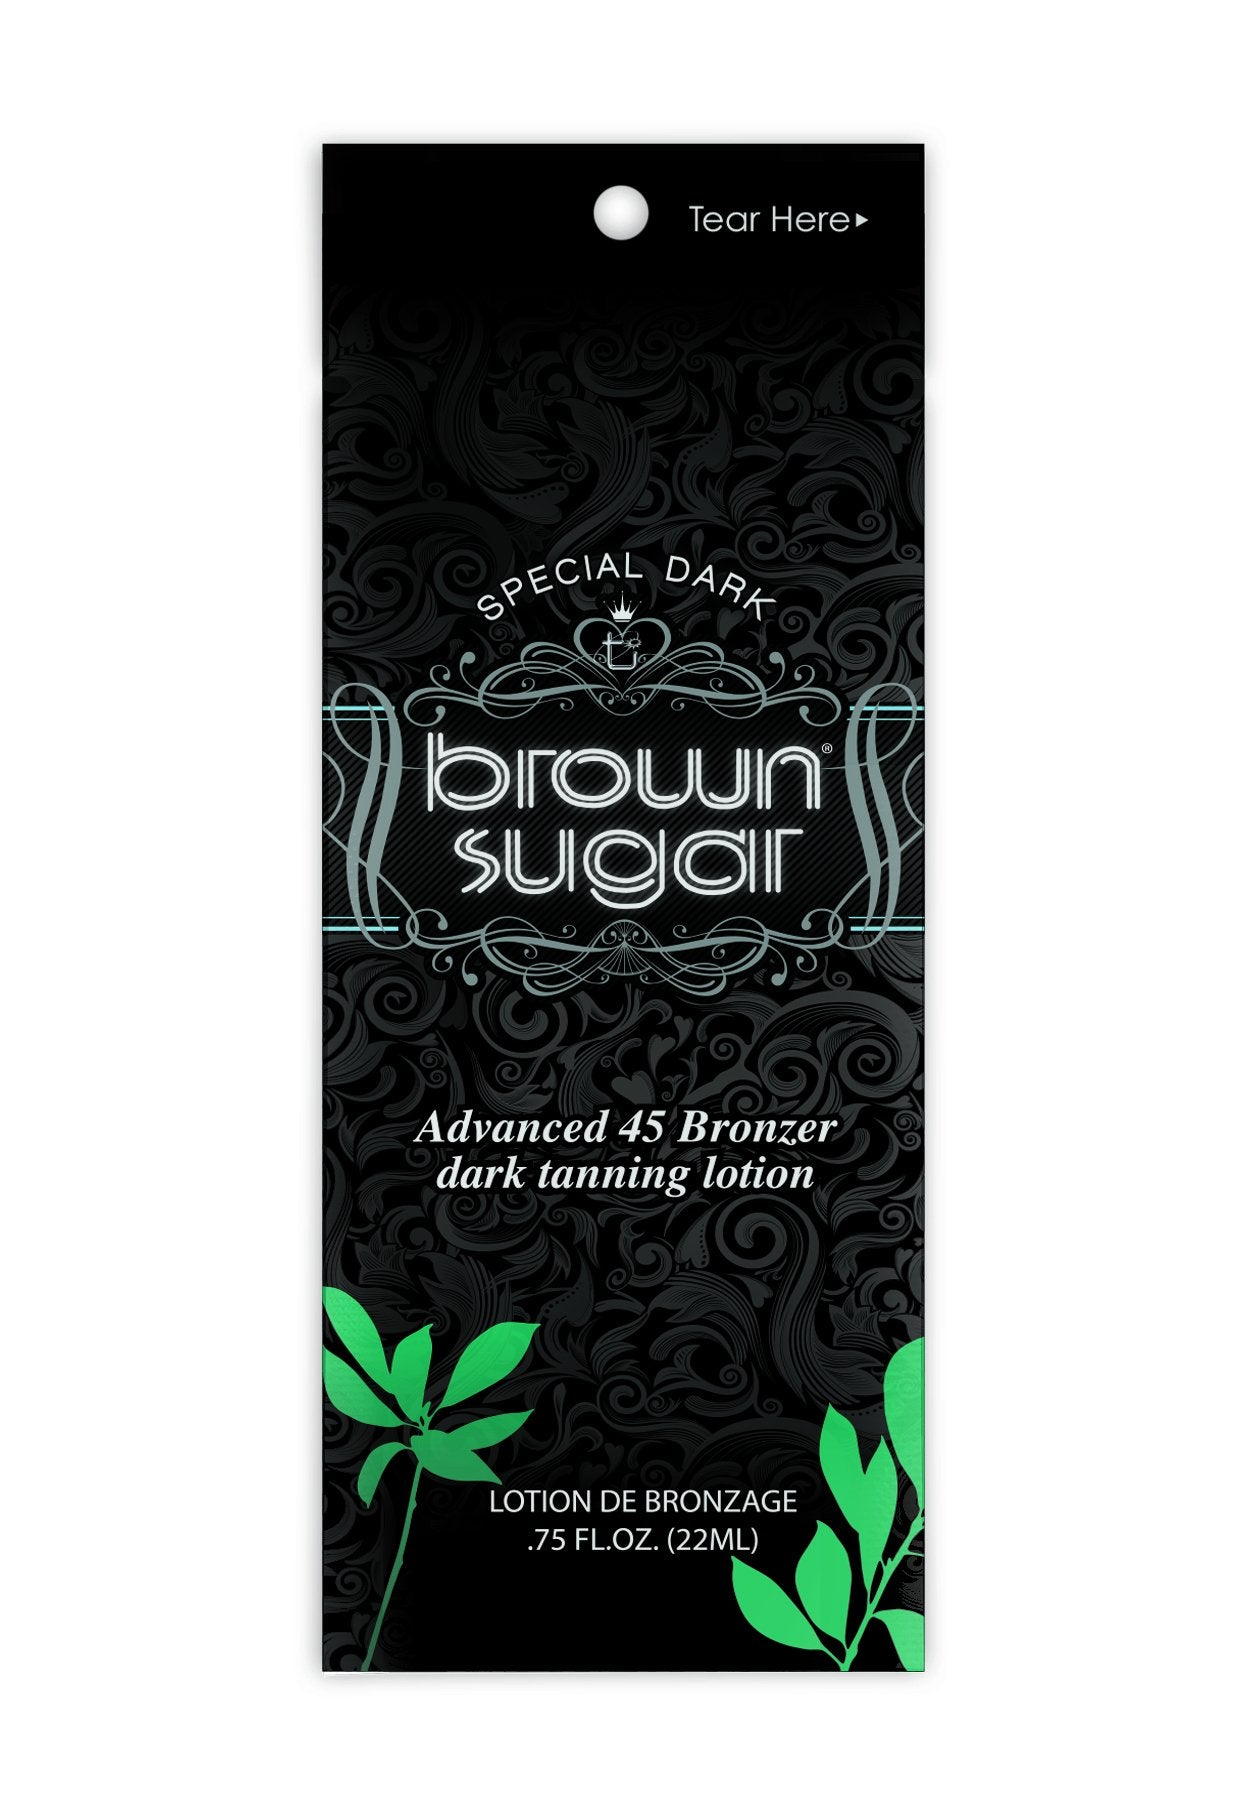 Special Dark Brown Sugar Tanning Lotion Packet